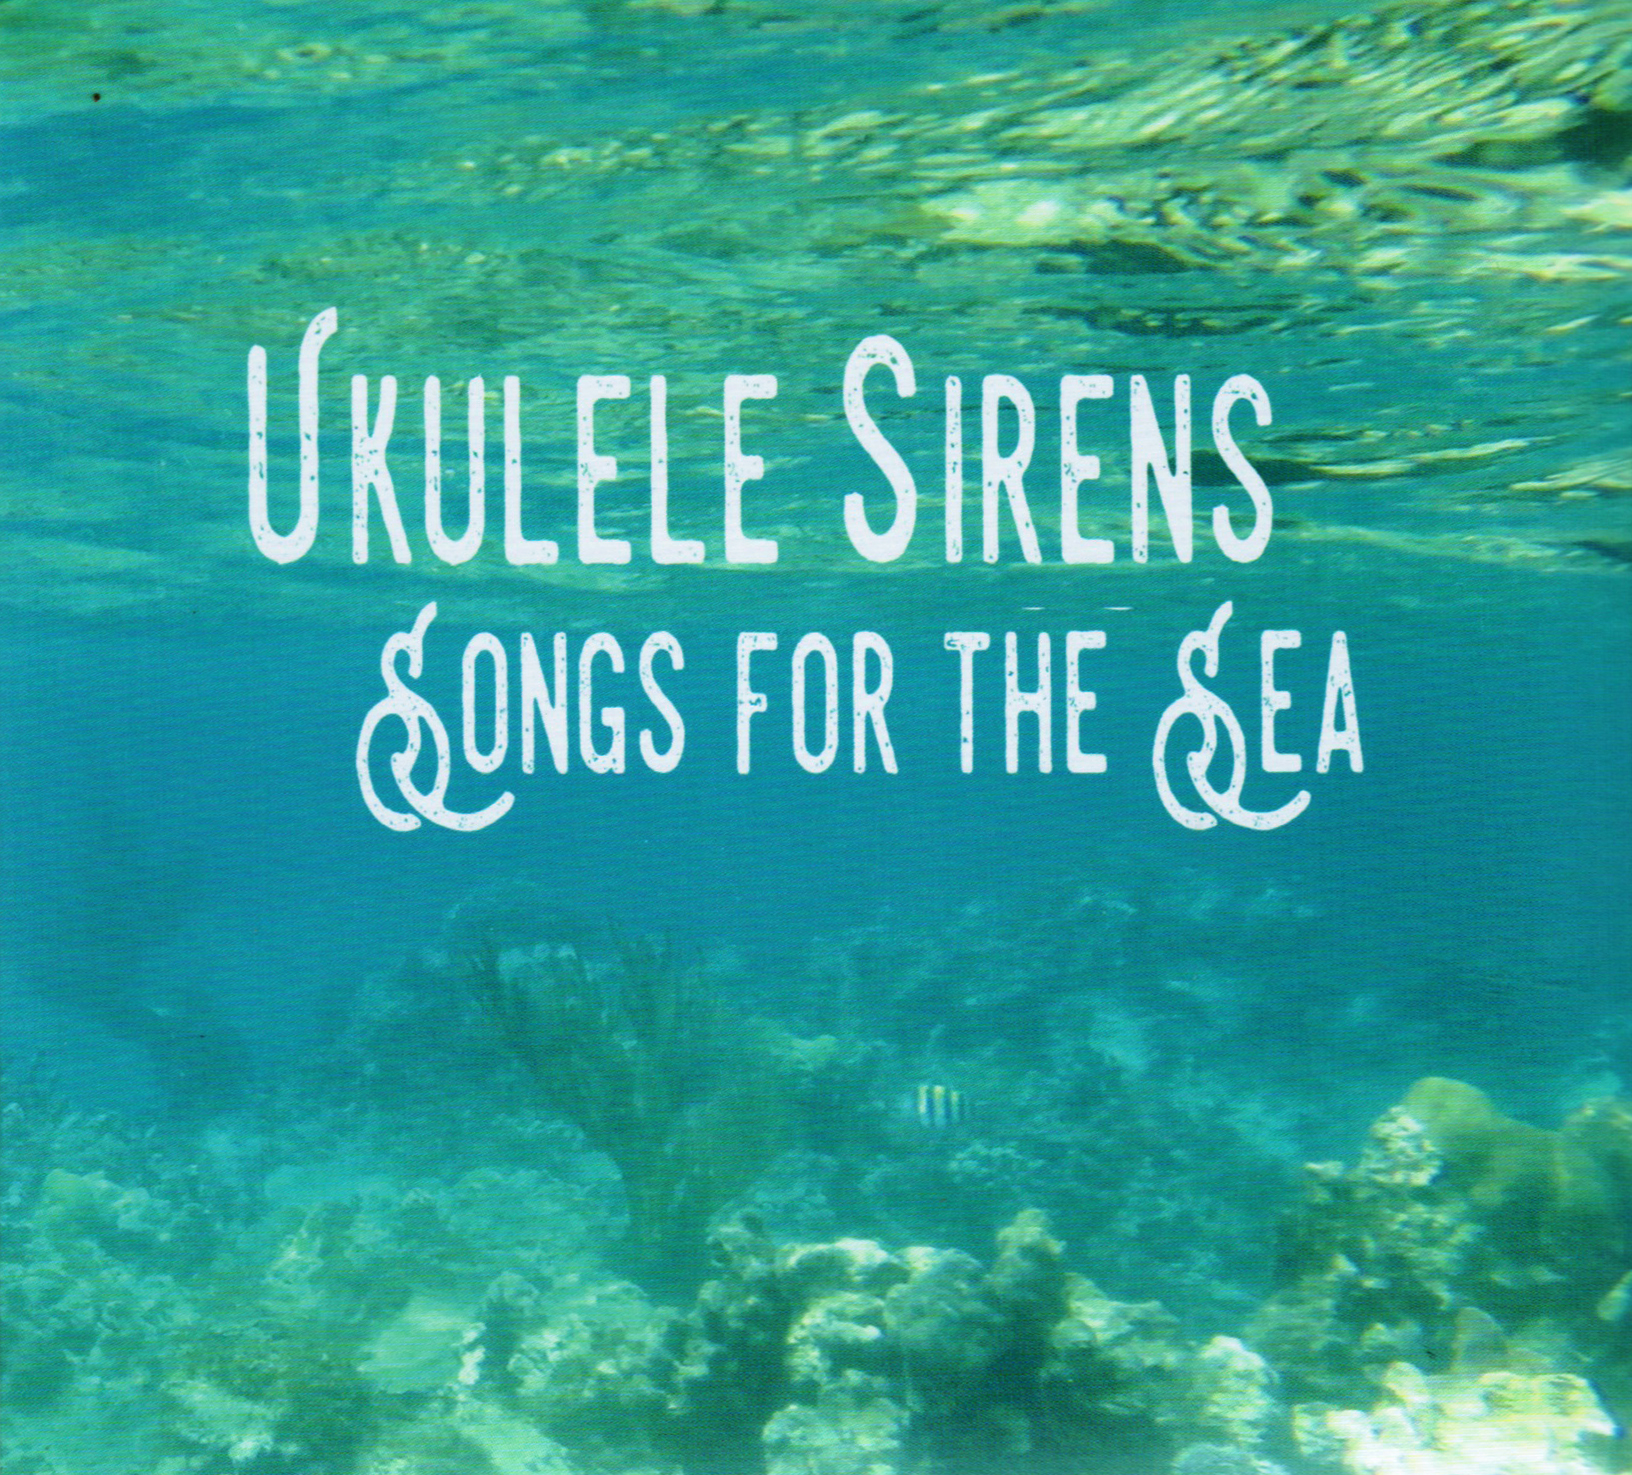 Ukulele Sirens Songs For the Sea.jpeg